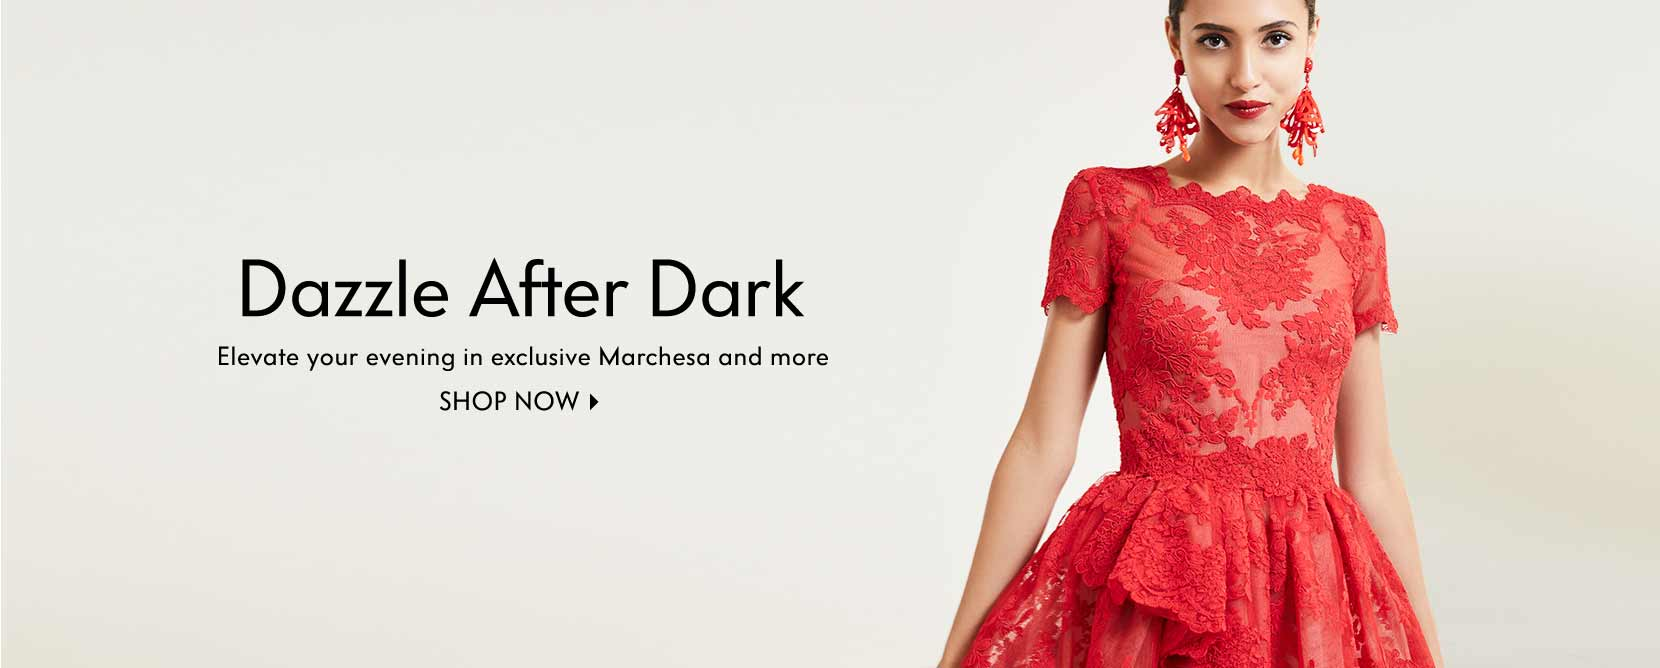 Dazzle After Dark Elevate your evening in exclusive Marchesa and more